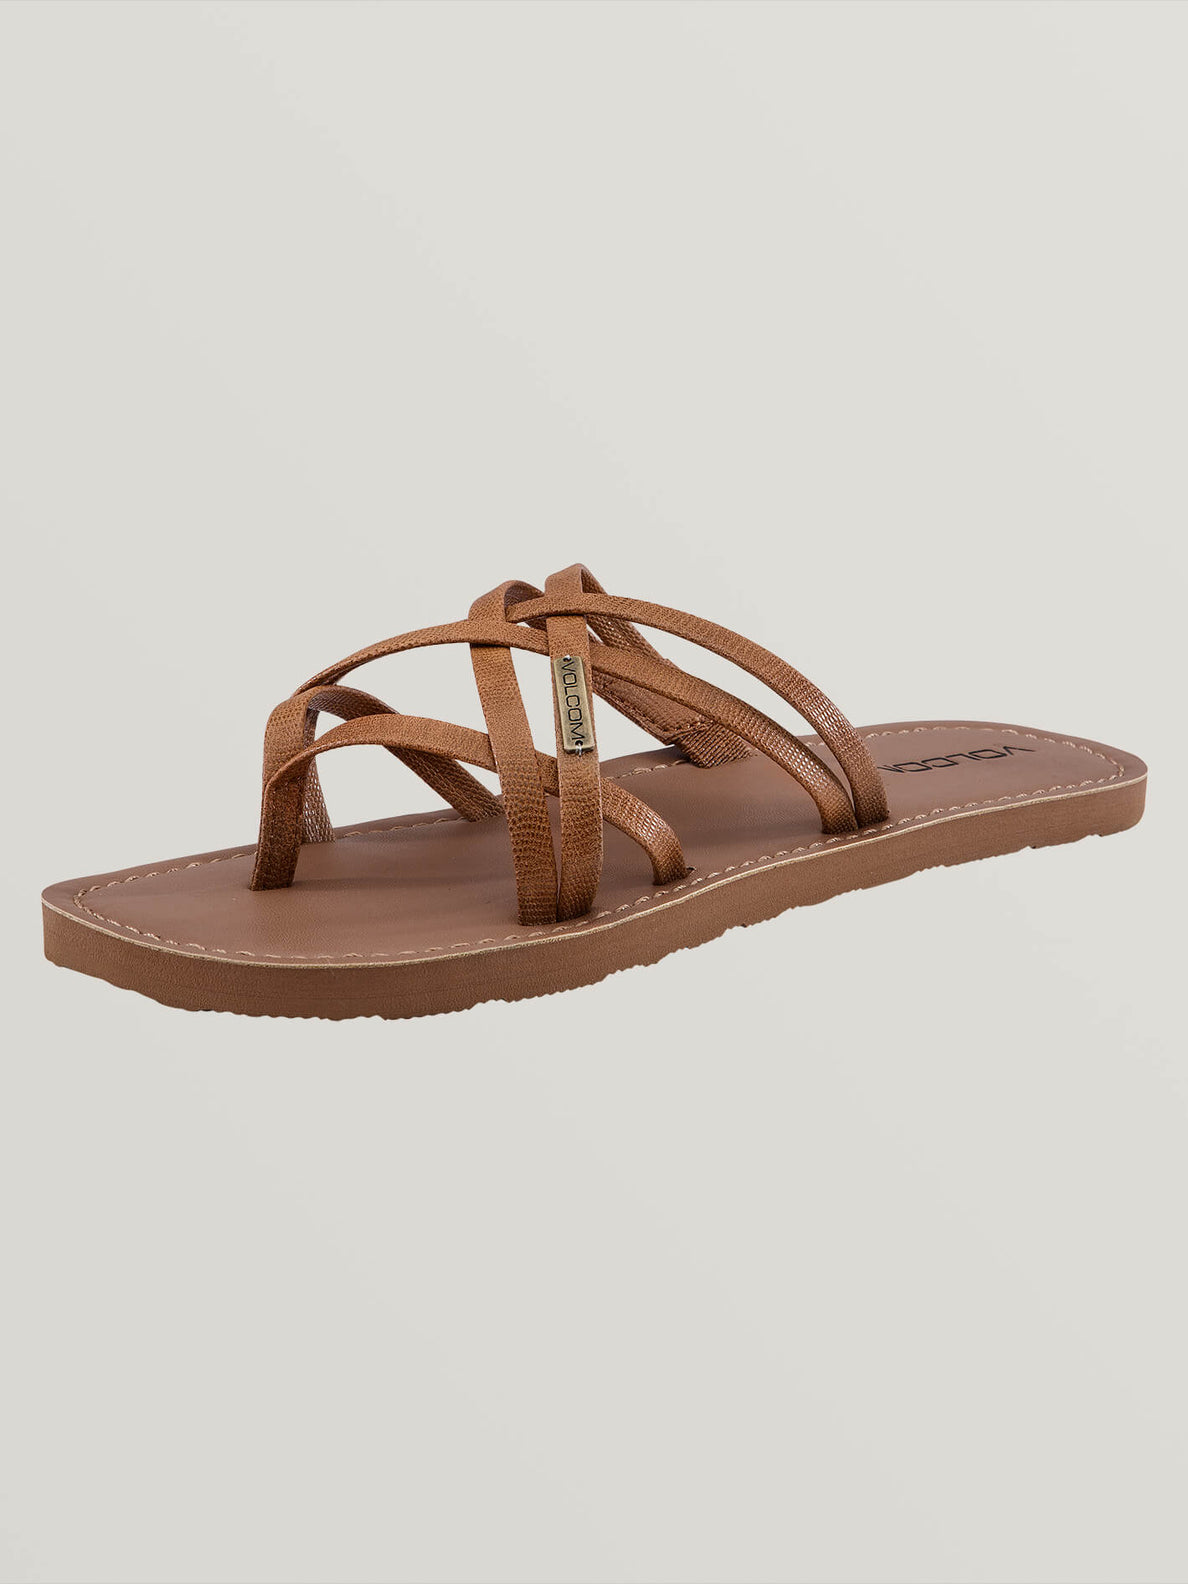 Strap Happy Sandals In Cognac, Back View